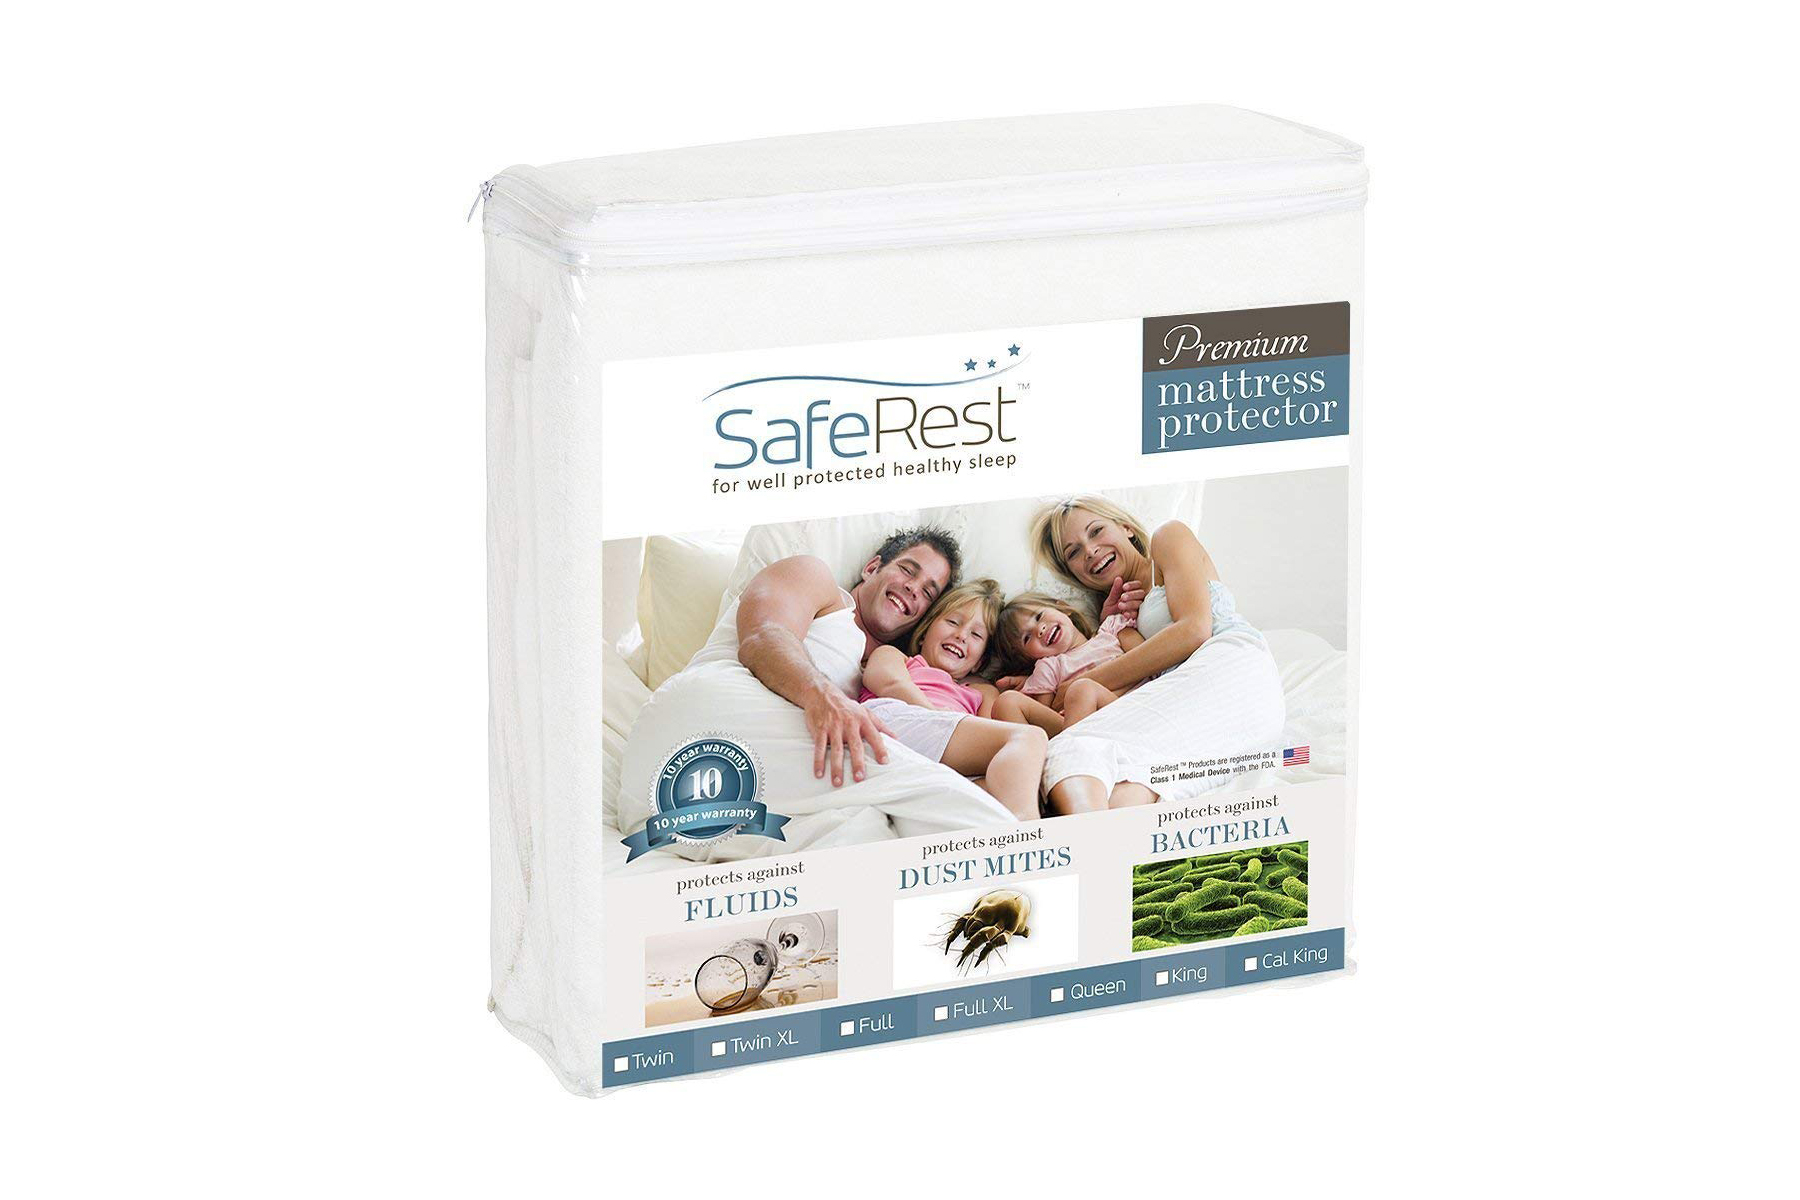 SafeRest Hypoallergenic Waterproof Mattress Protector